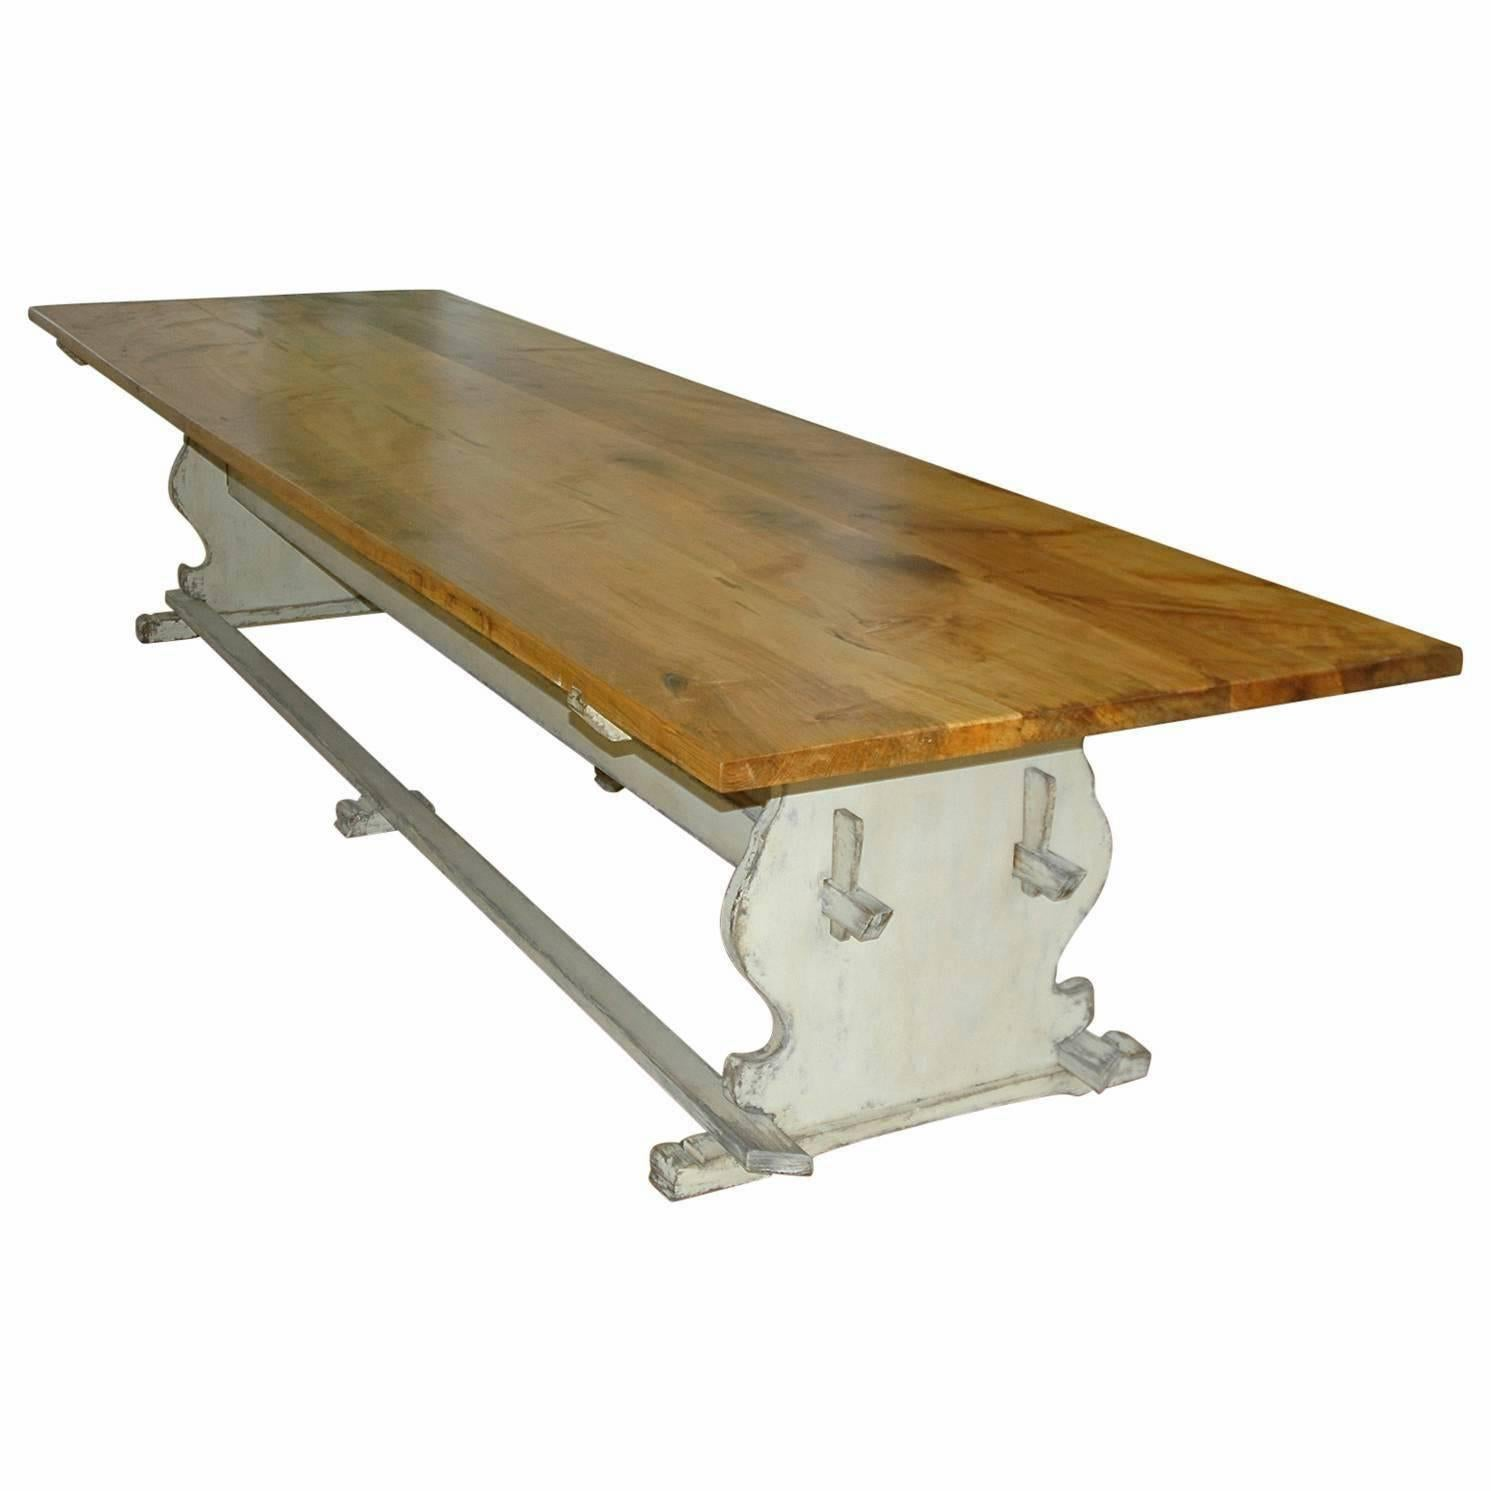 Bonnin Ashley Custom Made 12' Gustavian Table Shown with Painted Trestle Base